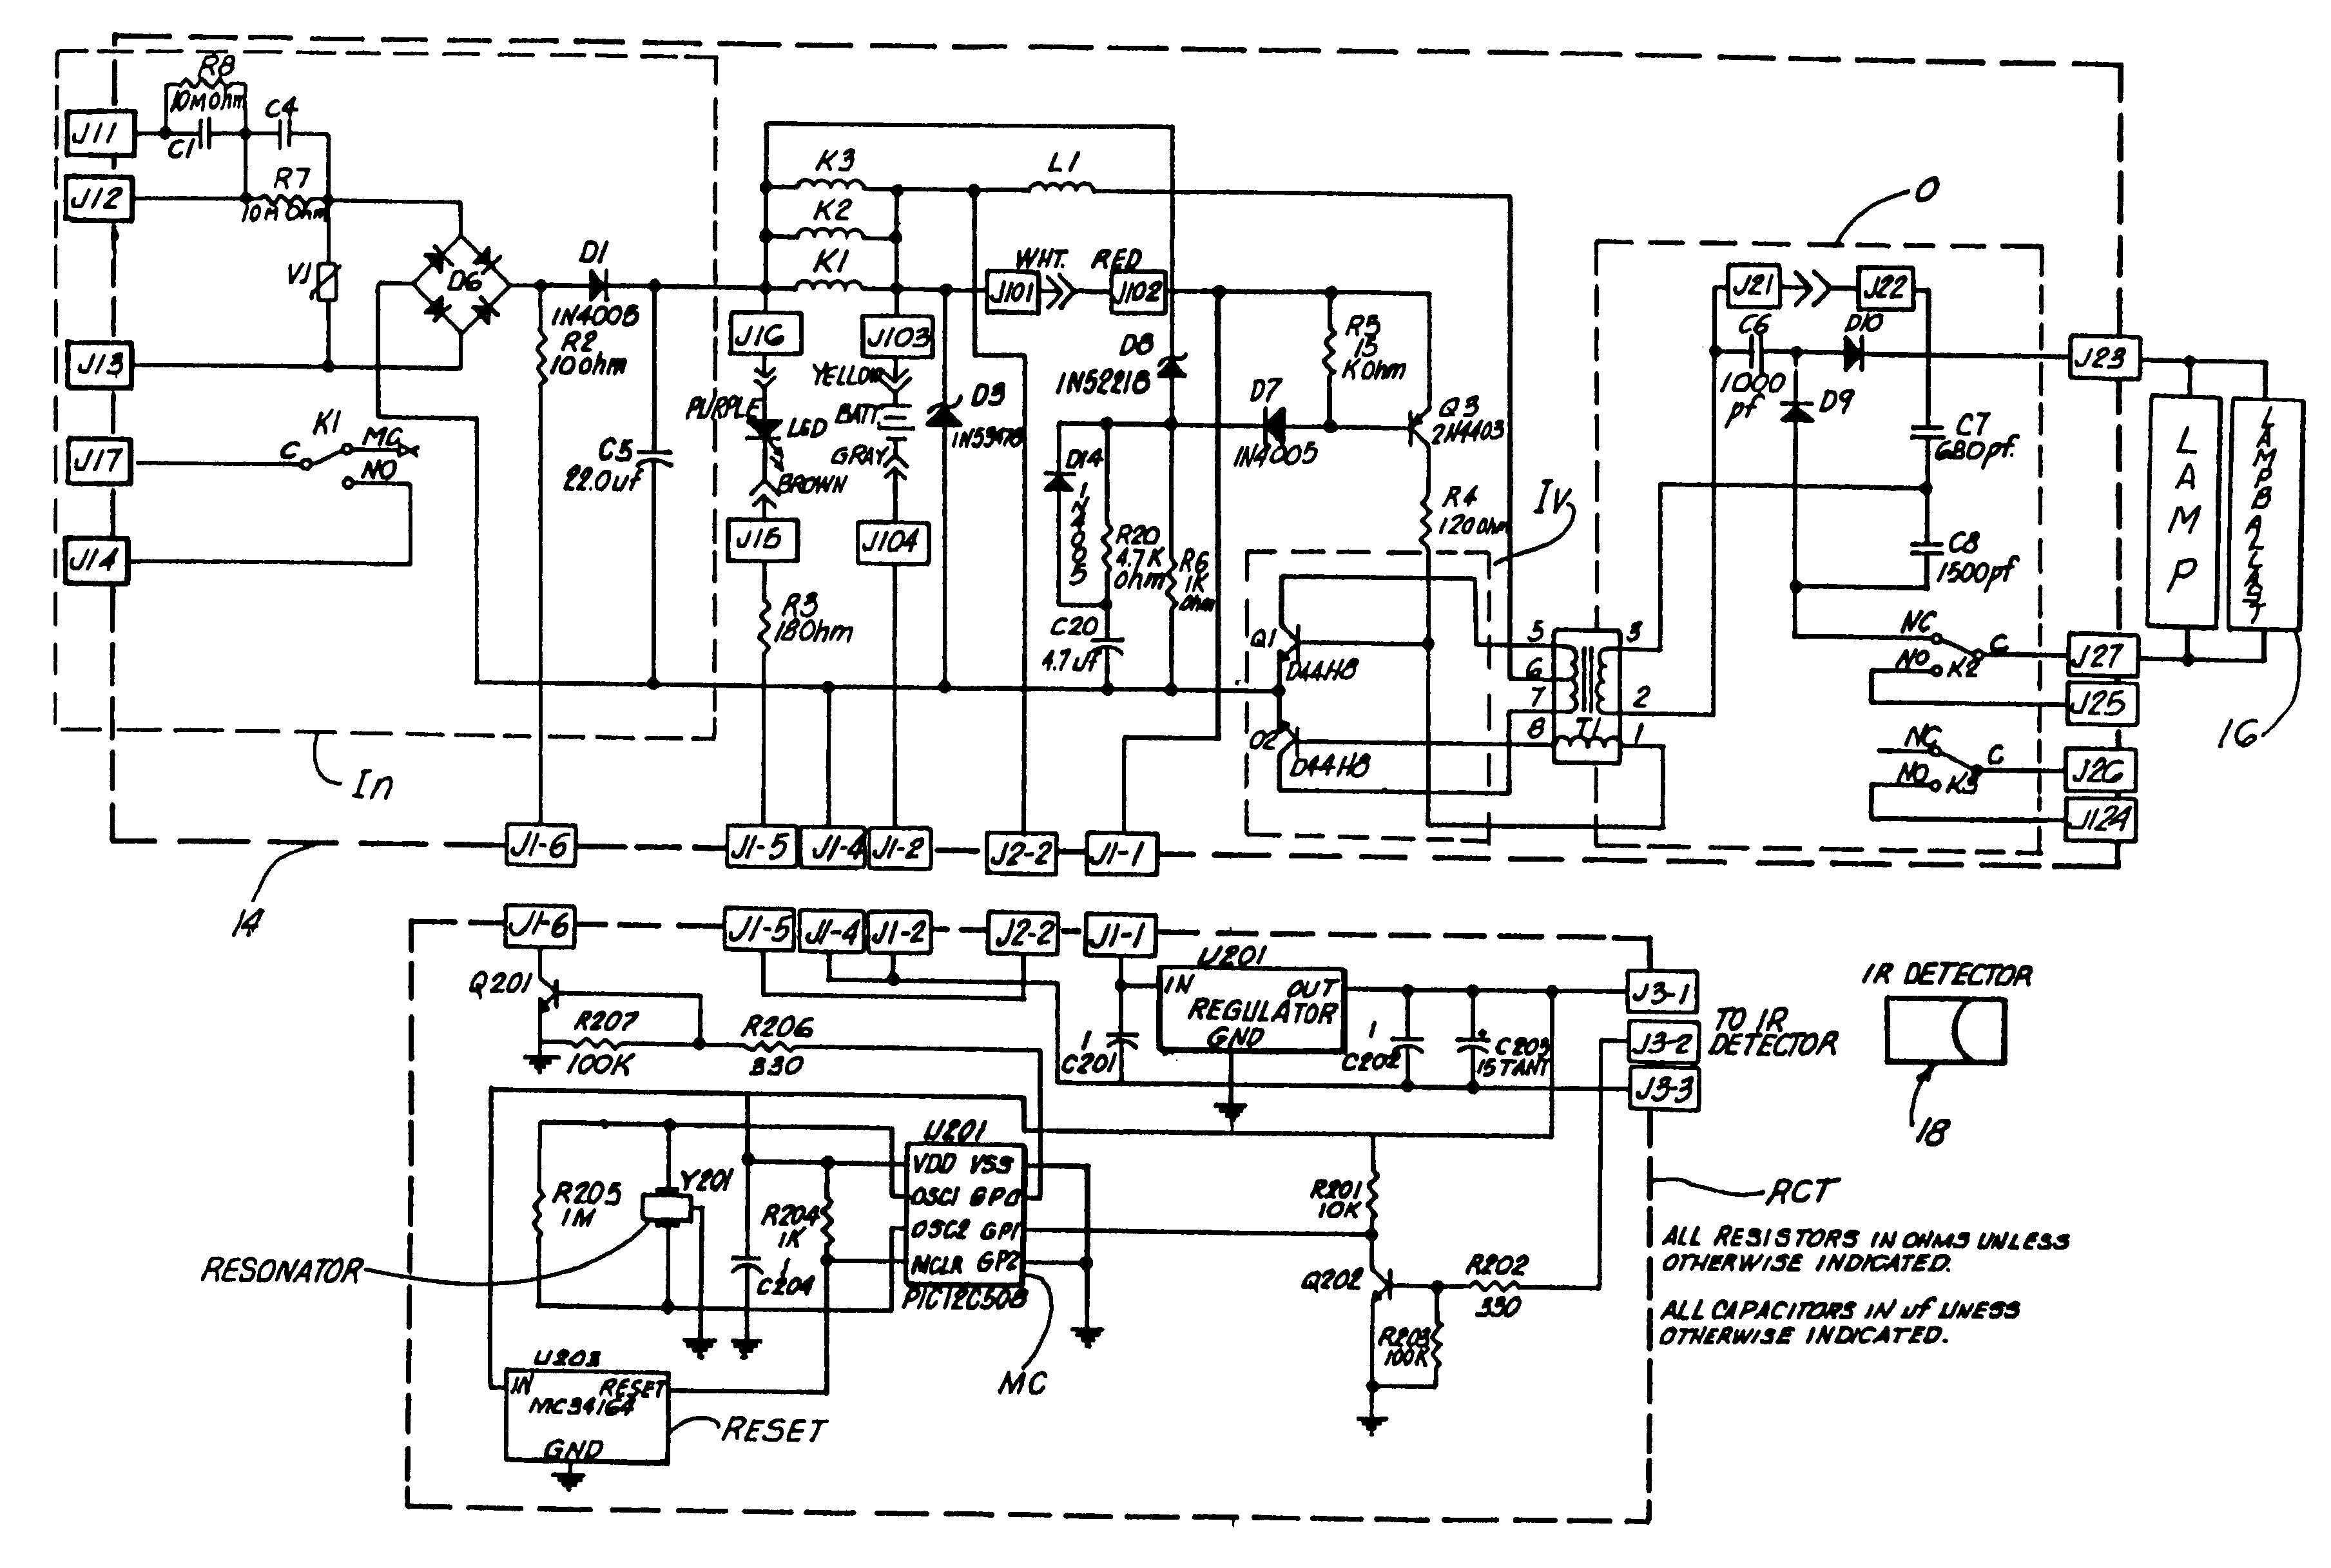 beam detector wiring diagram with Us6392349 on US6392349 as well Engineeronadisk 58 likewise Gas Detection Systems in addition Infrared Beam Barrier Proximity Sensor Circuit besides Smoke detector.